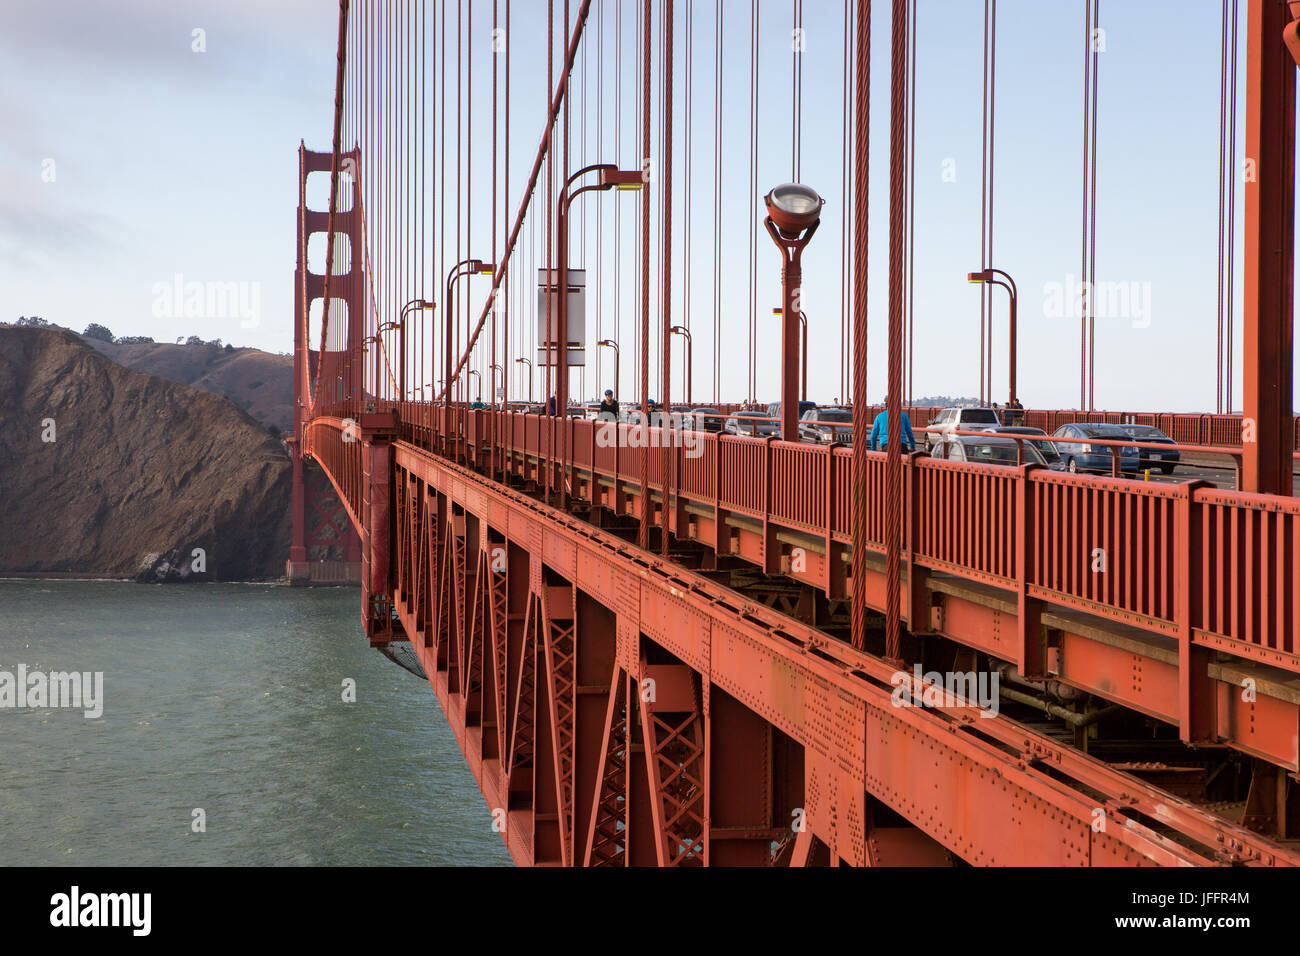 Bicyclists and cars crossing the Golden Gate Bridge. - Stock Image